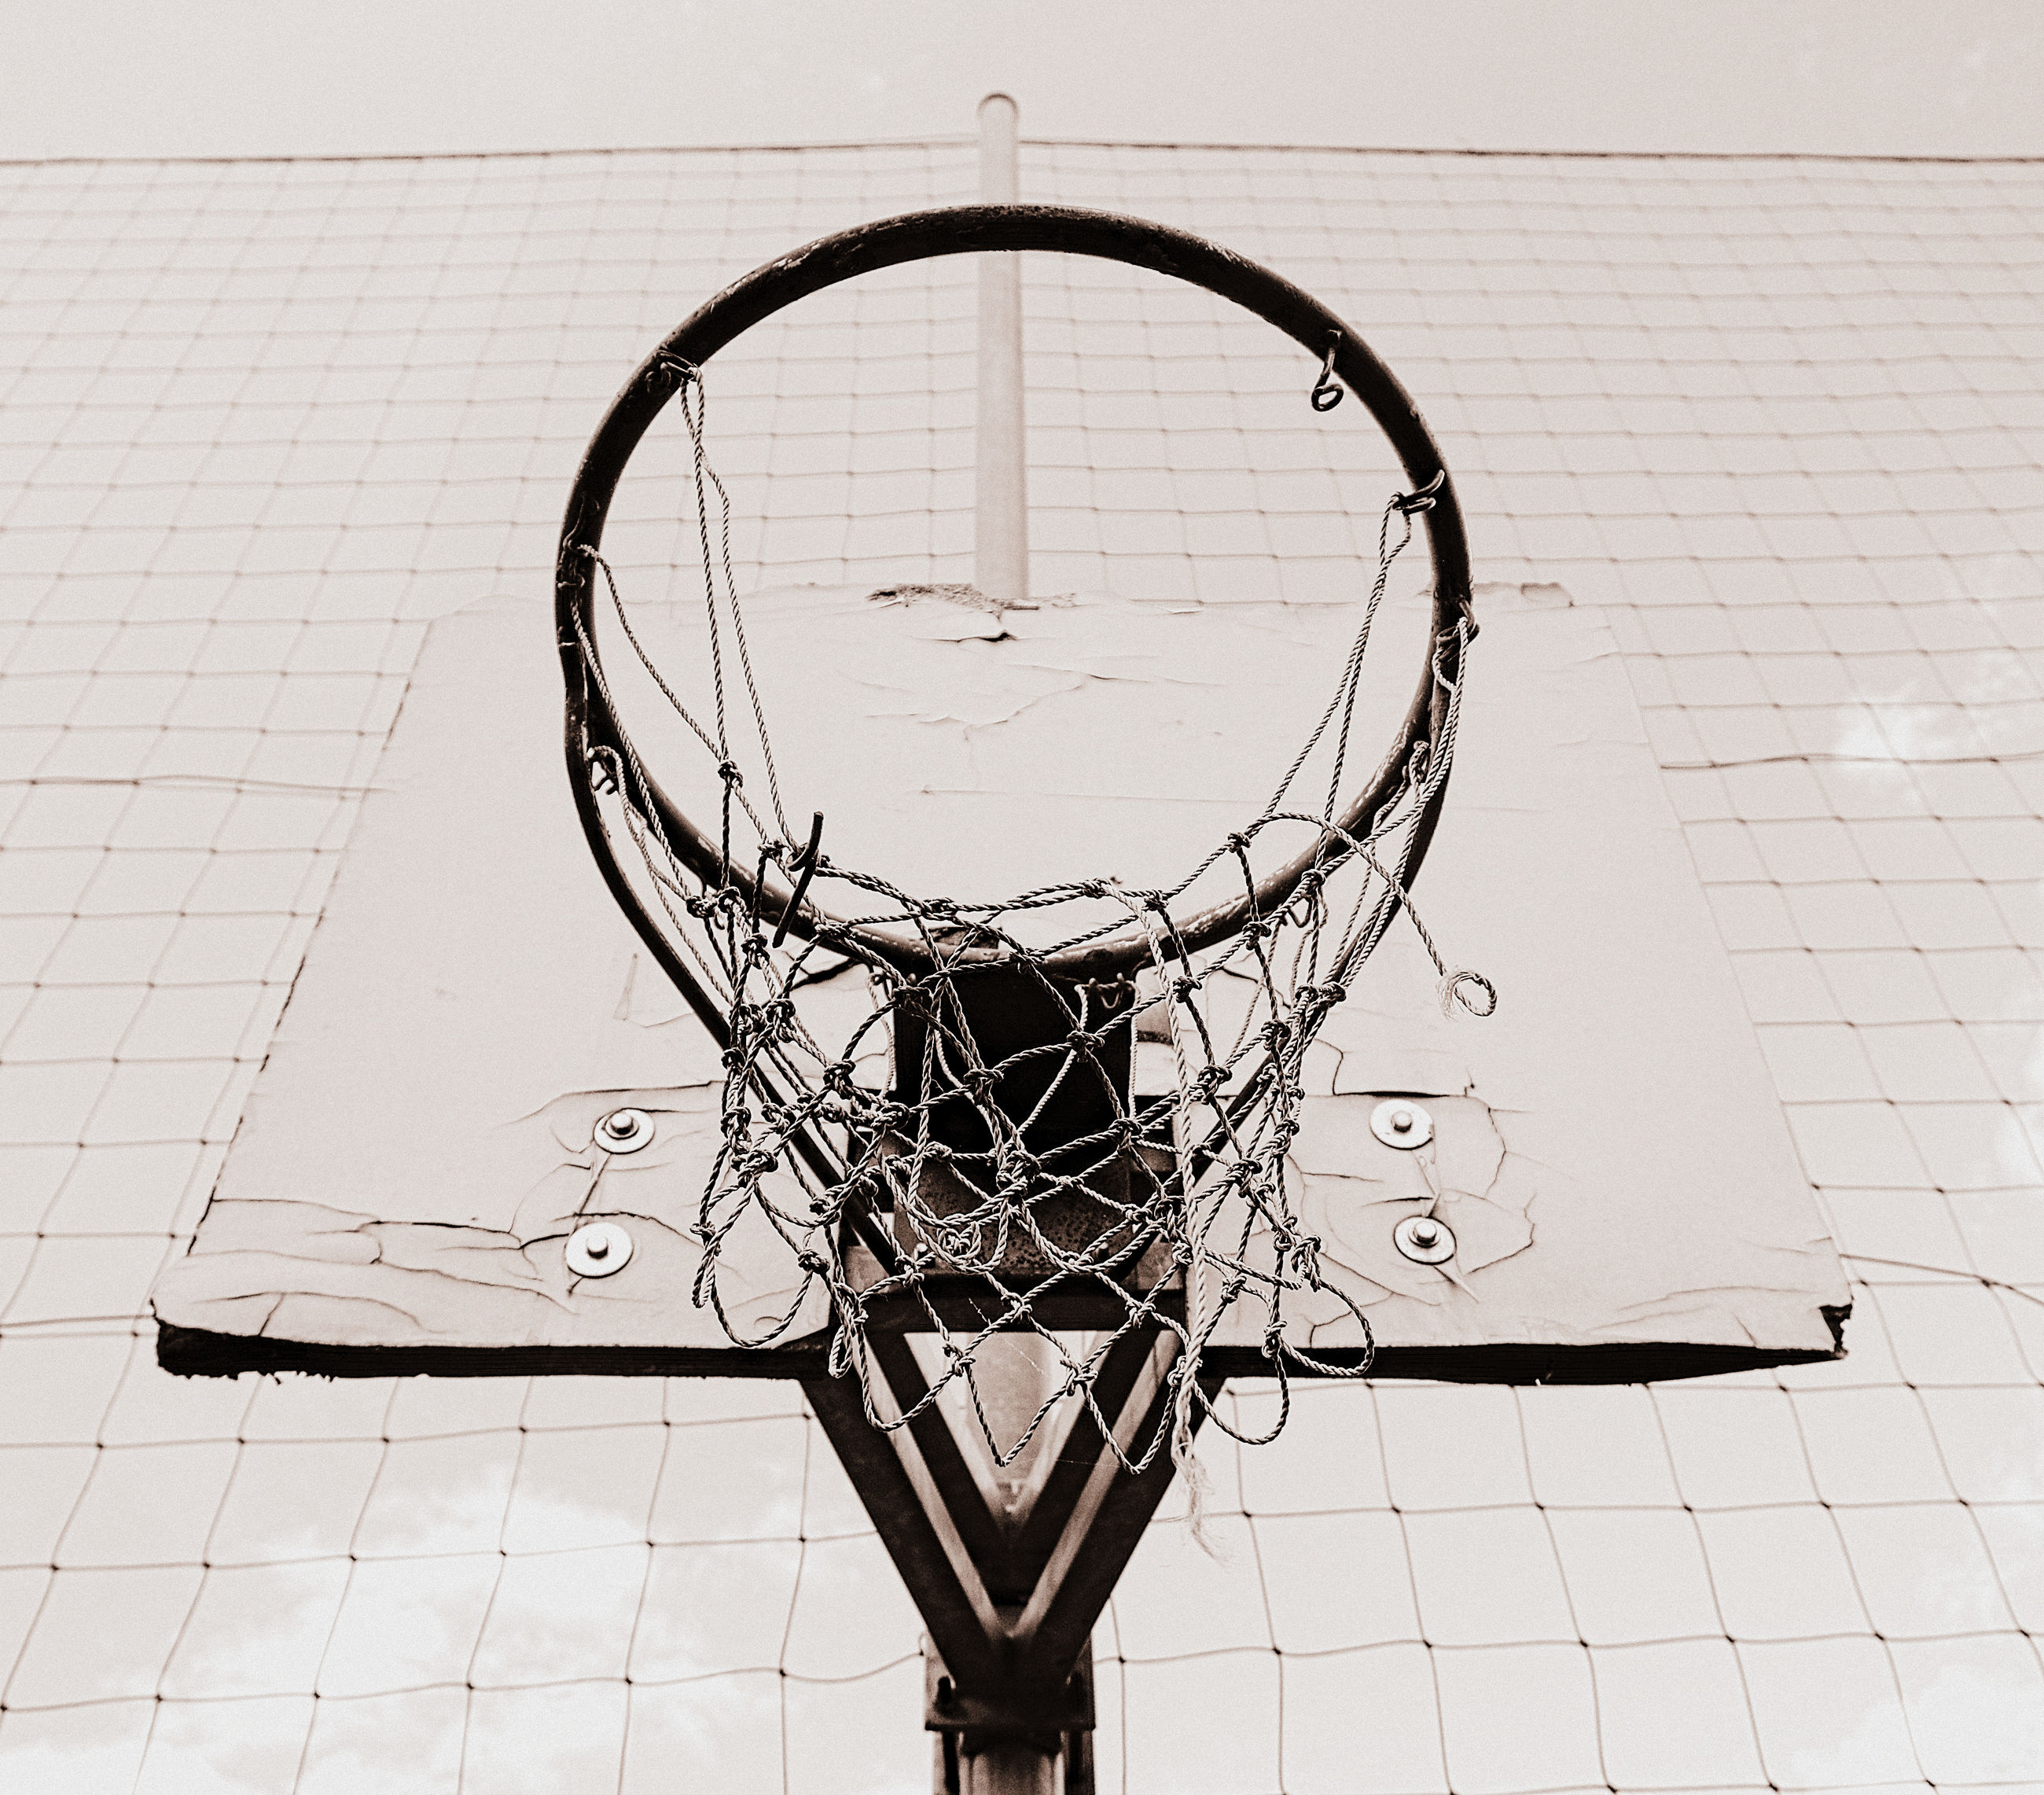 basketball - sport, basketball hoop, net - sports equipment, sport, no people, wall - building feature, day, geometric shape, metal, shape, circle, outdoors, high angle view, nature, close-up, basket, architecture, team sport, relaxation